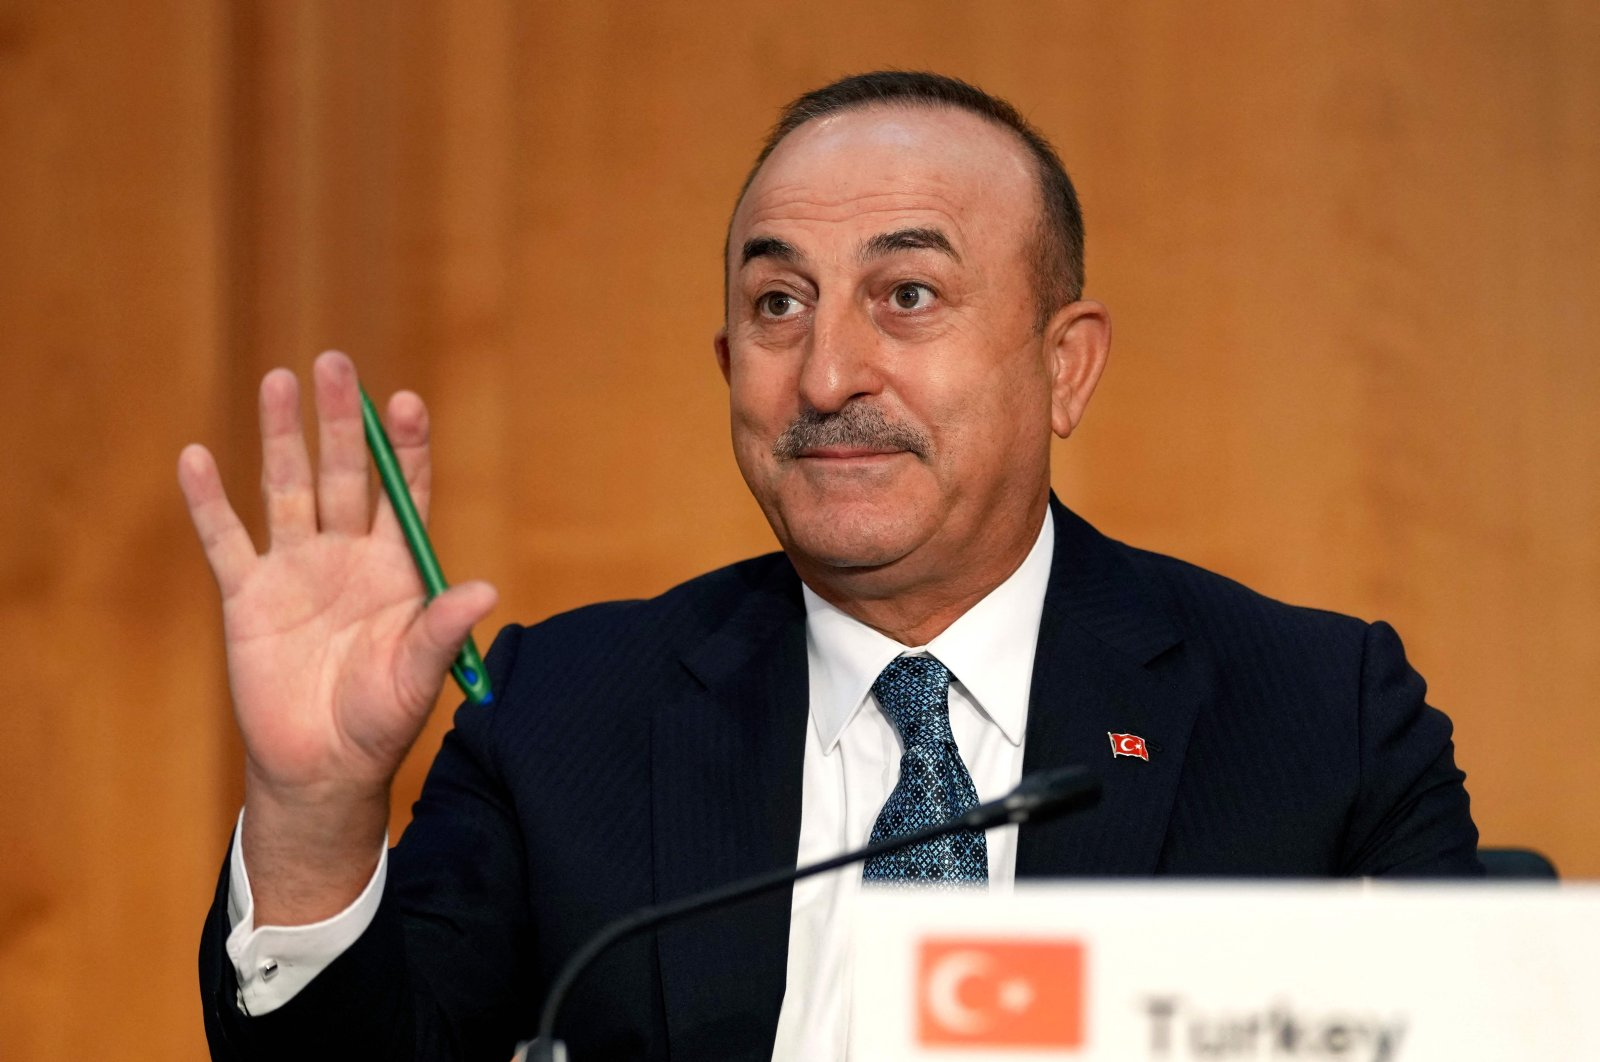 Foreign Minister Mevlüt Çavuşoğlu waves as he attends the Second Berlin Conference on peace in Libya at the German Foreign Ministry in Berlin, Germany, June 23, 2021. (AFP Photo)